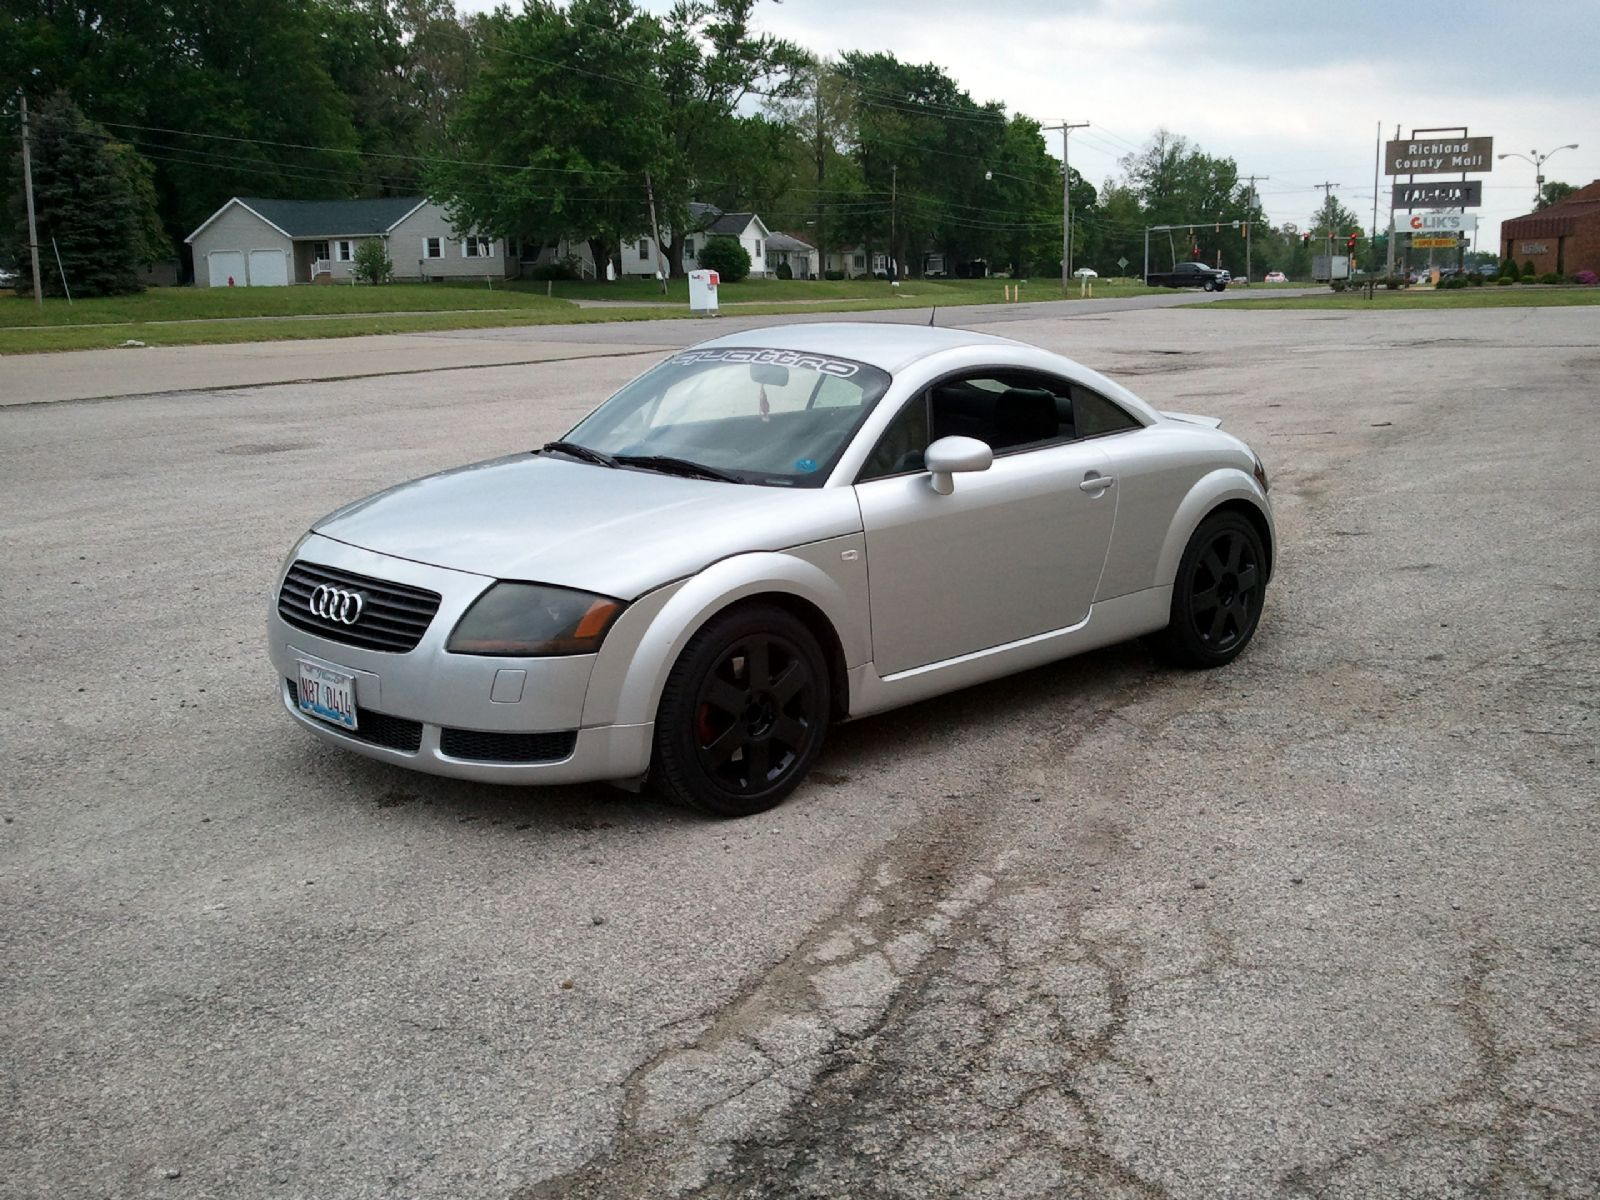 2000 audi tt quattro for sale olney illinois. Black Bedroom Furniture Sets. Home Design Ideas